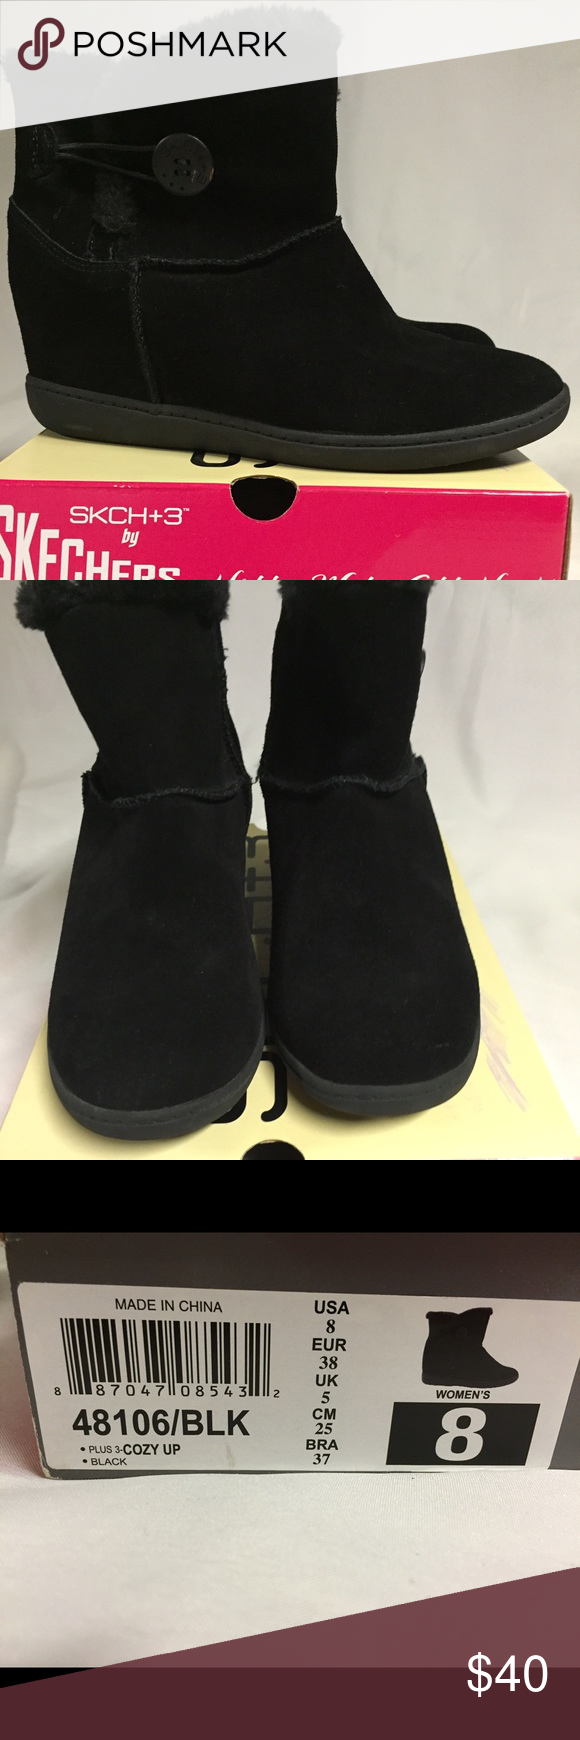 cheap for discount f67da 8673d Skechers hidden wedge heel boots Worn only once, like new Skechers Shoes  Ankle Boots   Booties